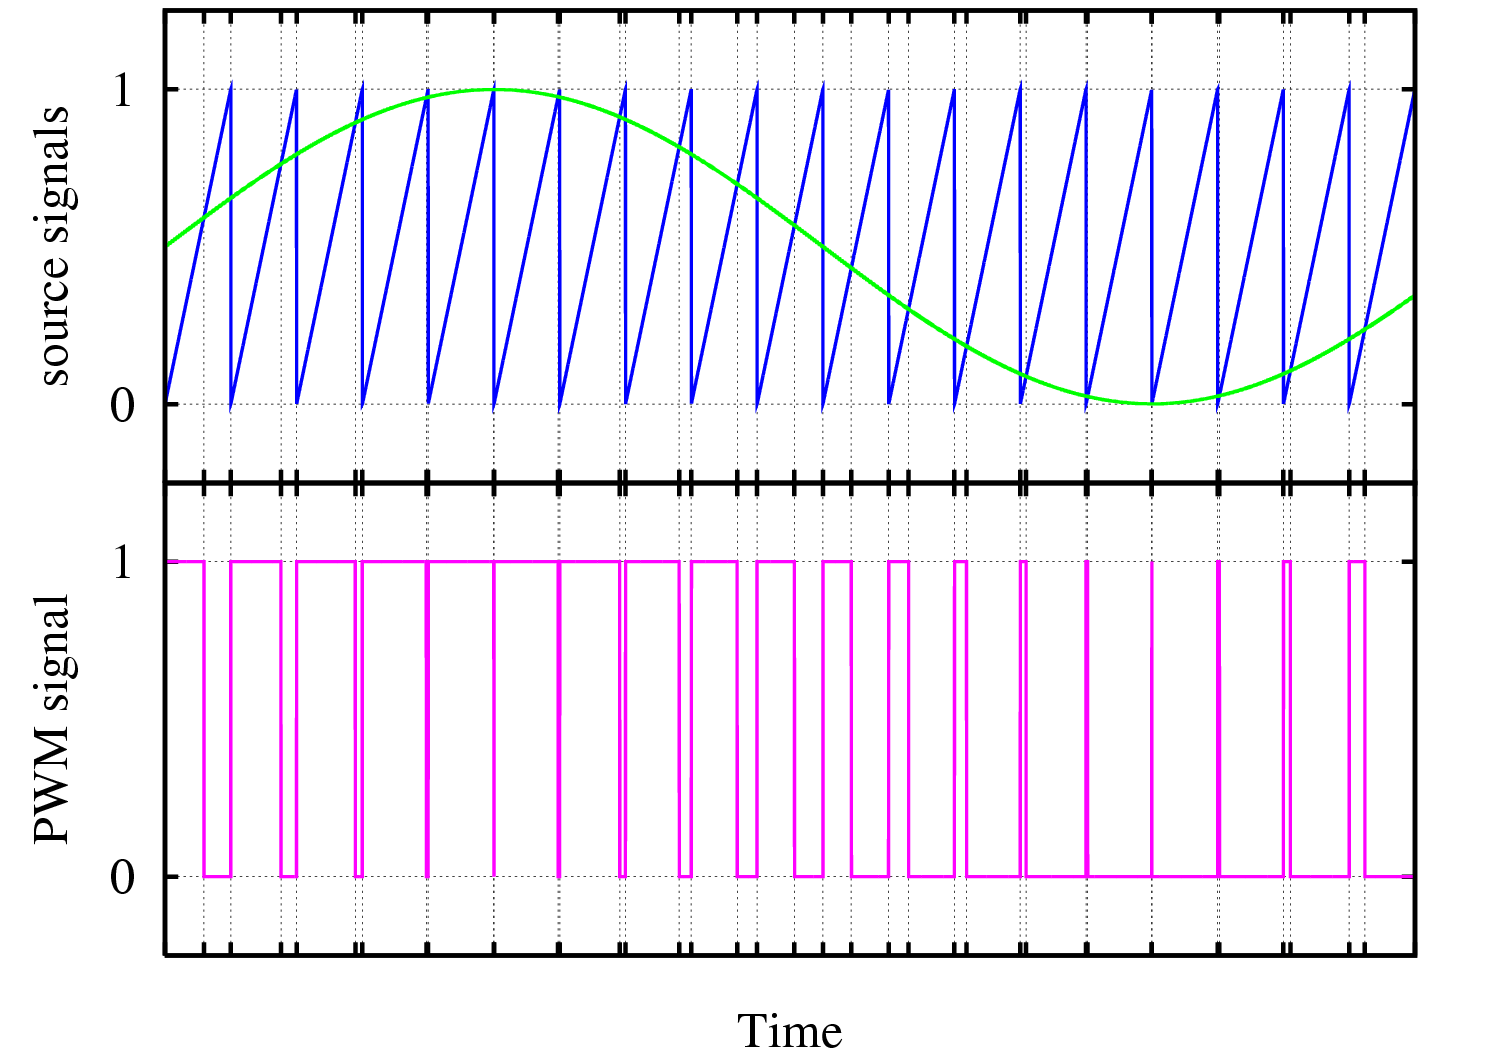 File:Pwm.png - Wikimedia Commons